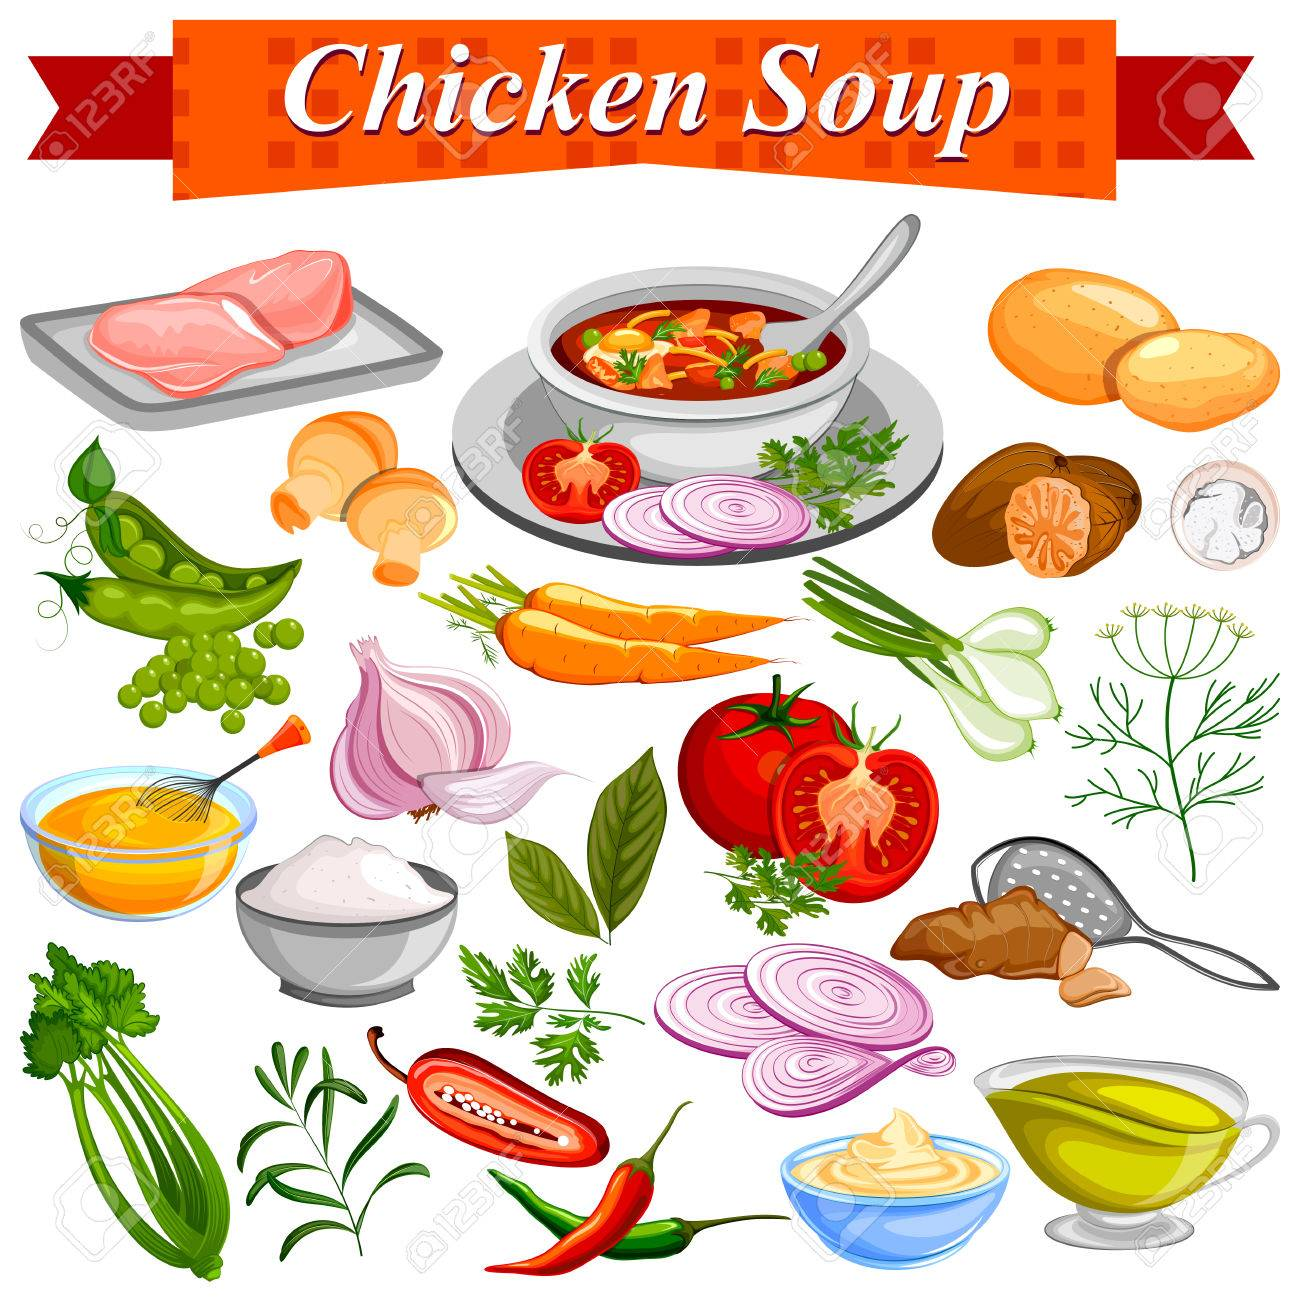 Ingredient for indian chicken soup recipe with vegetable and ingredient for indian chicken soup recipe with vegetable and spices stock vector 75948188 forumfinder Gallery